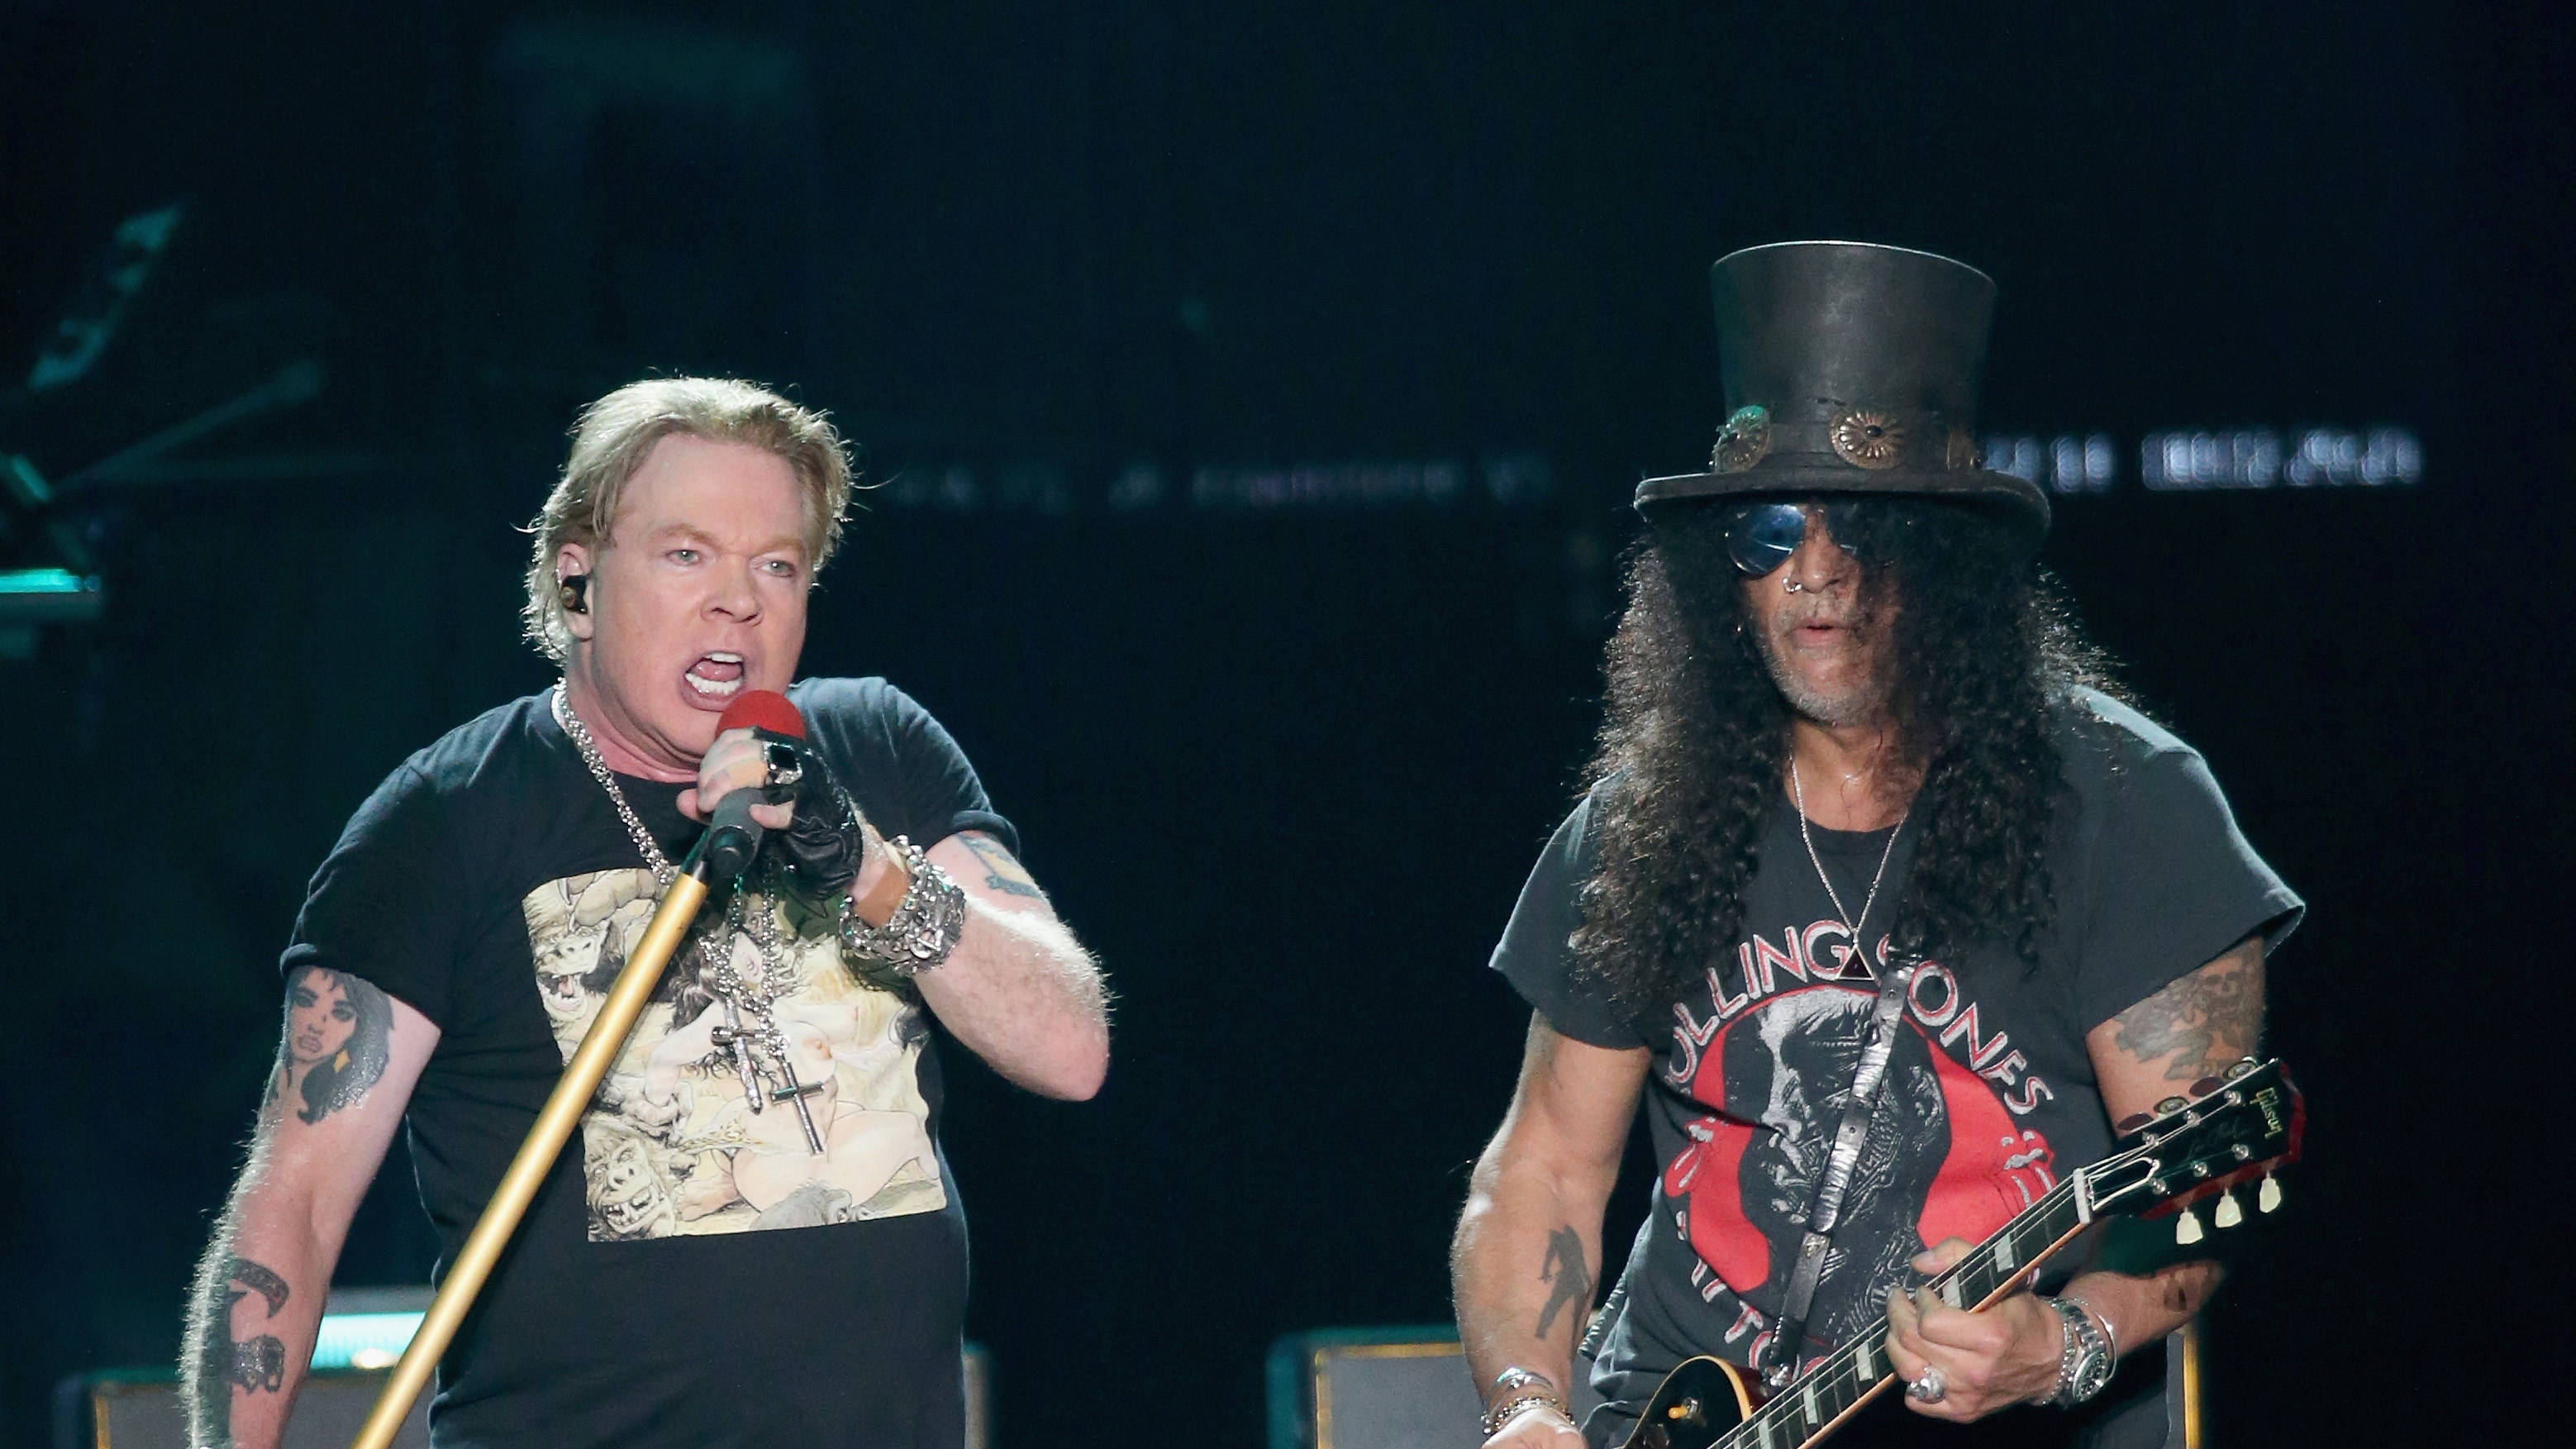 Guns N' Roses announce European tour dates, with space for potential Glastonbury Festival appearance